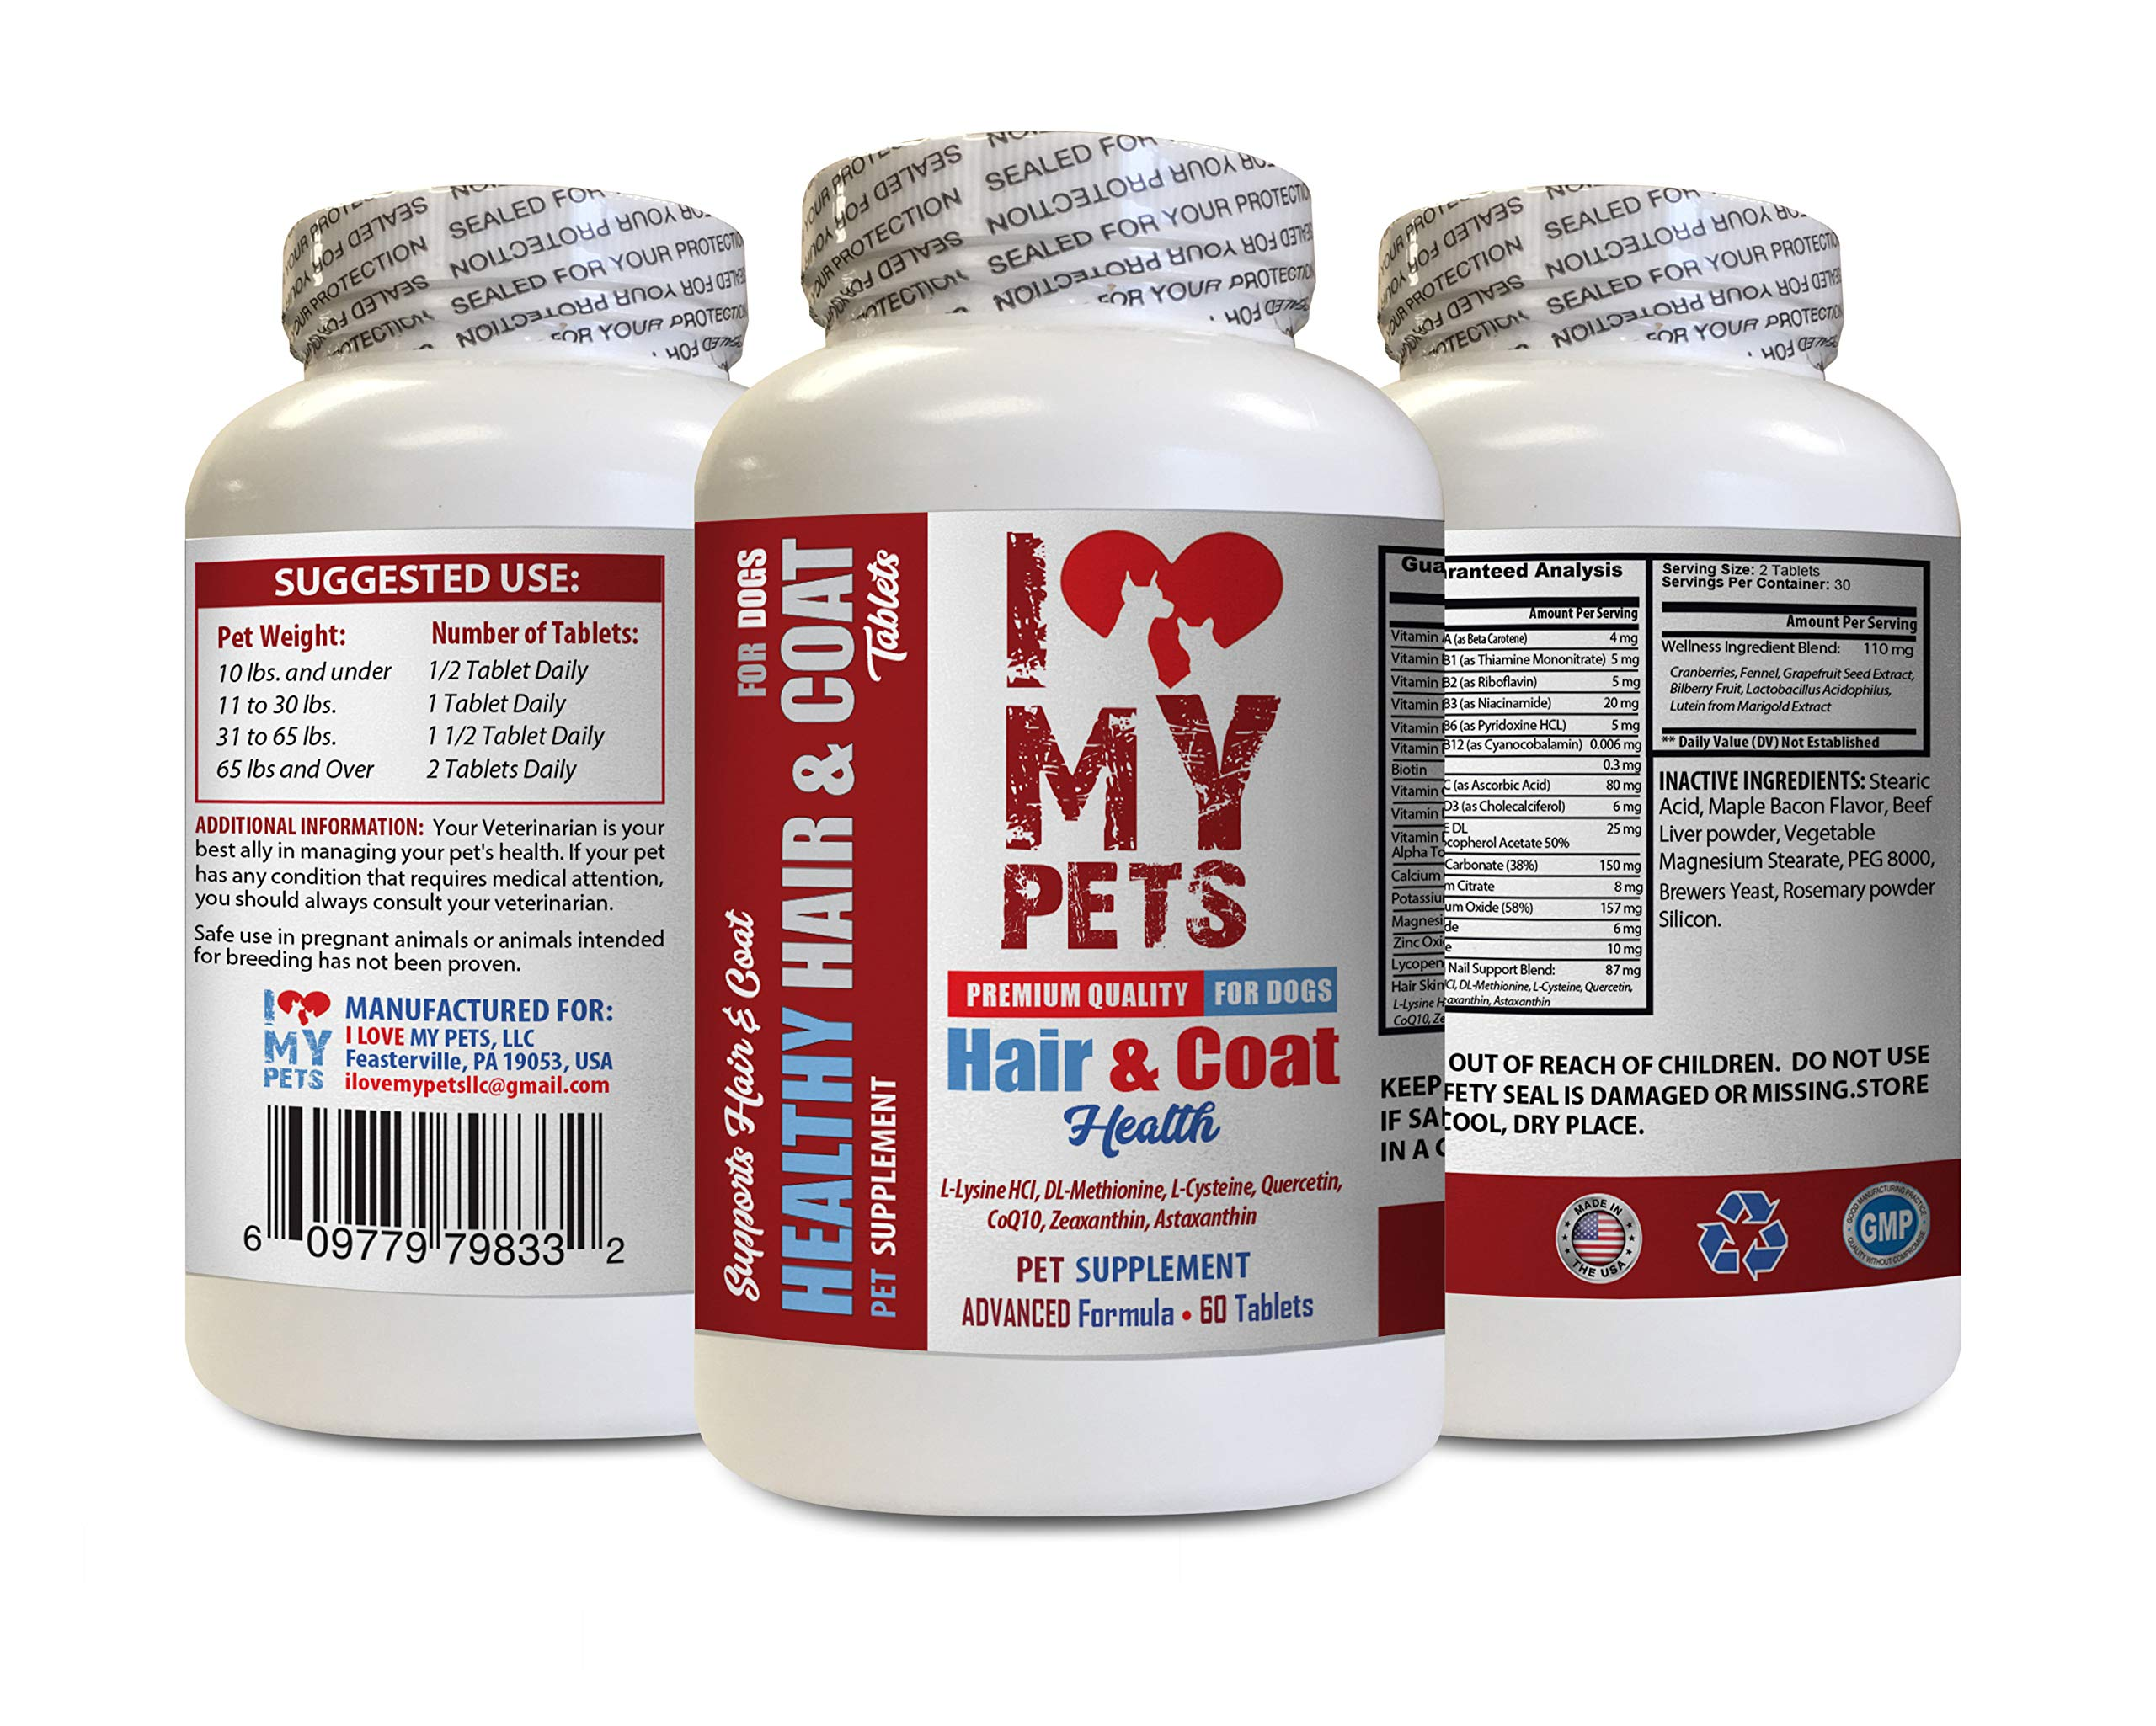 I LOVE MY PETS LLC Dog flakey Skin - Dog Healthy Hair and Coat - Premium Formula - Chews - Dog Vitamin a - 60 Treats (1 Bottle) by I LOVE MY PETS LLC